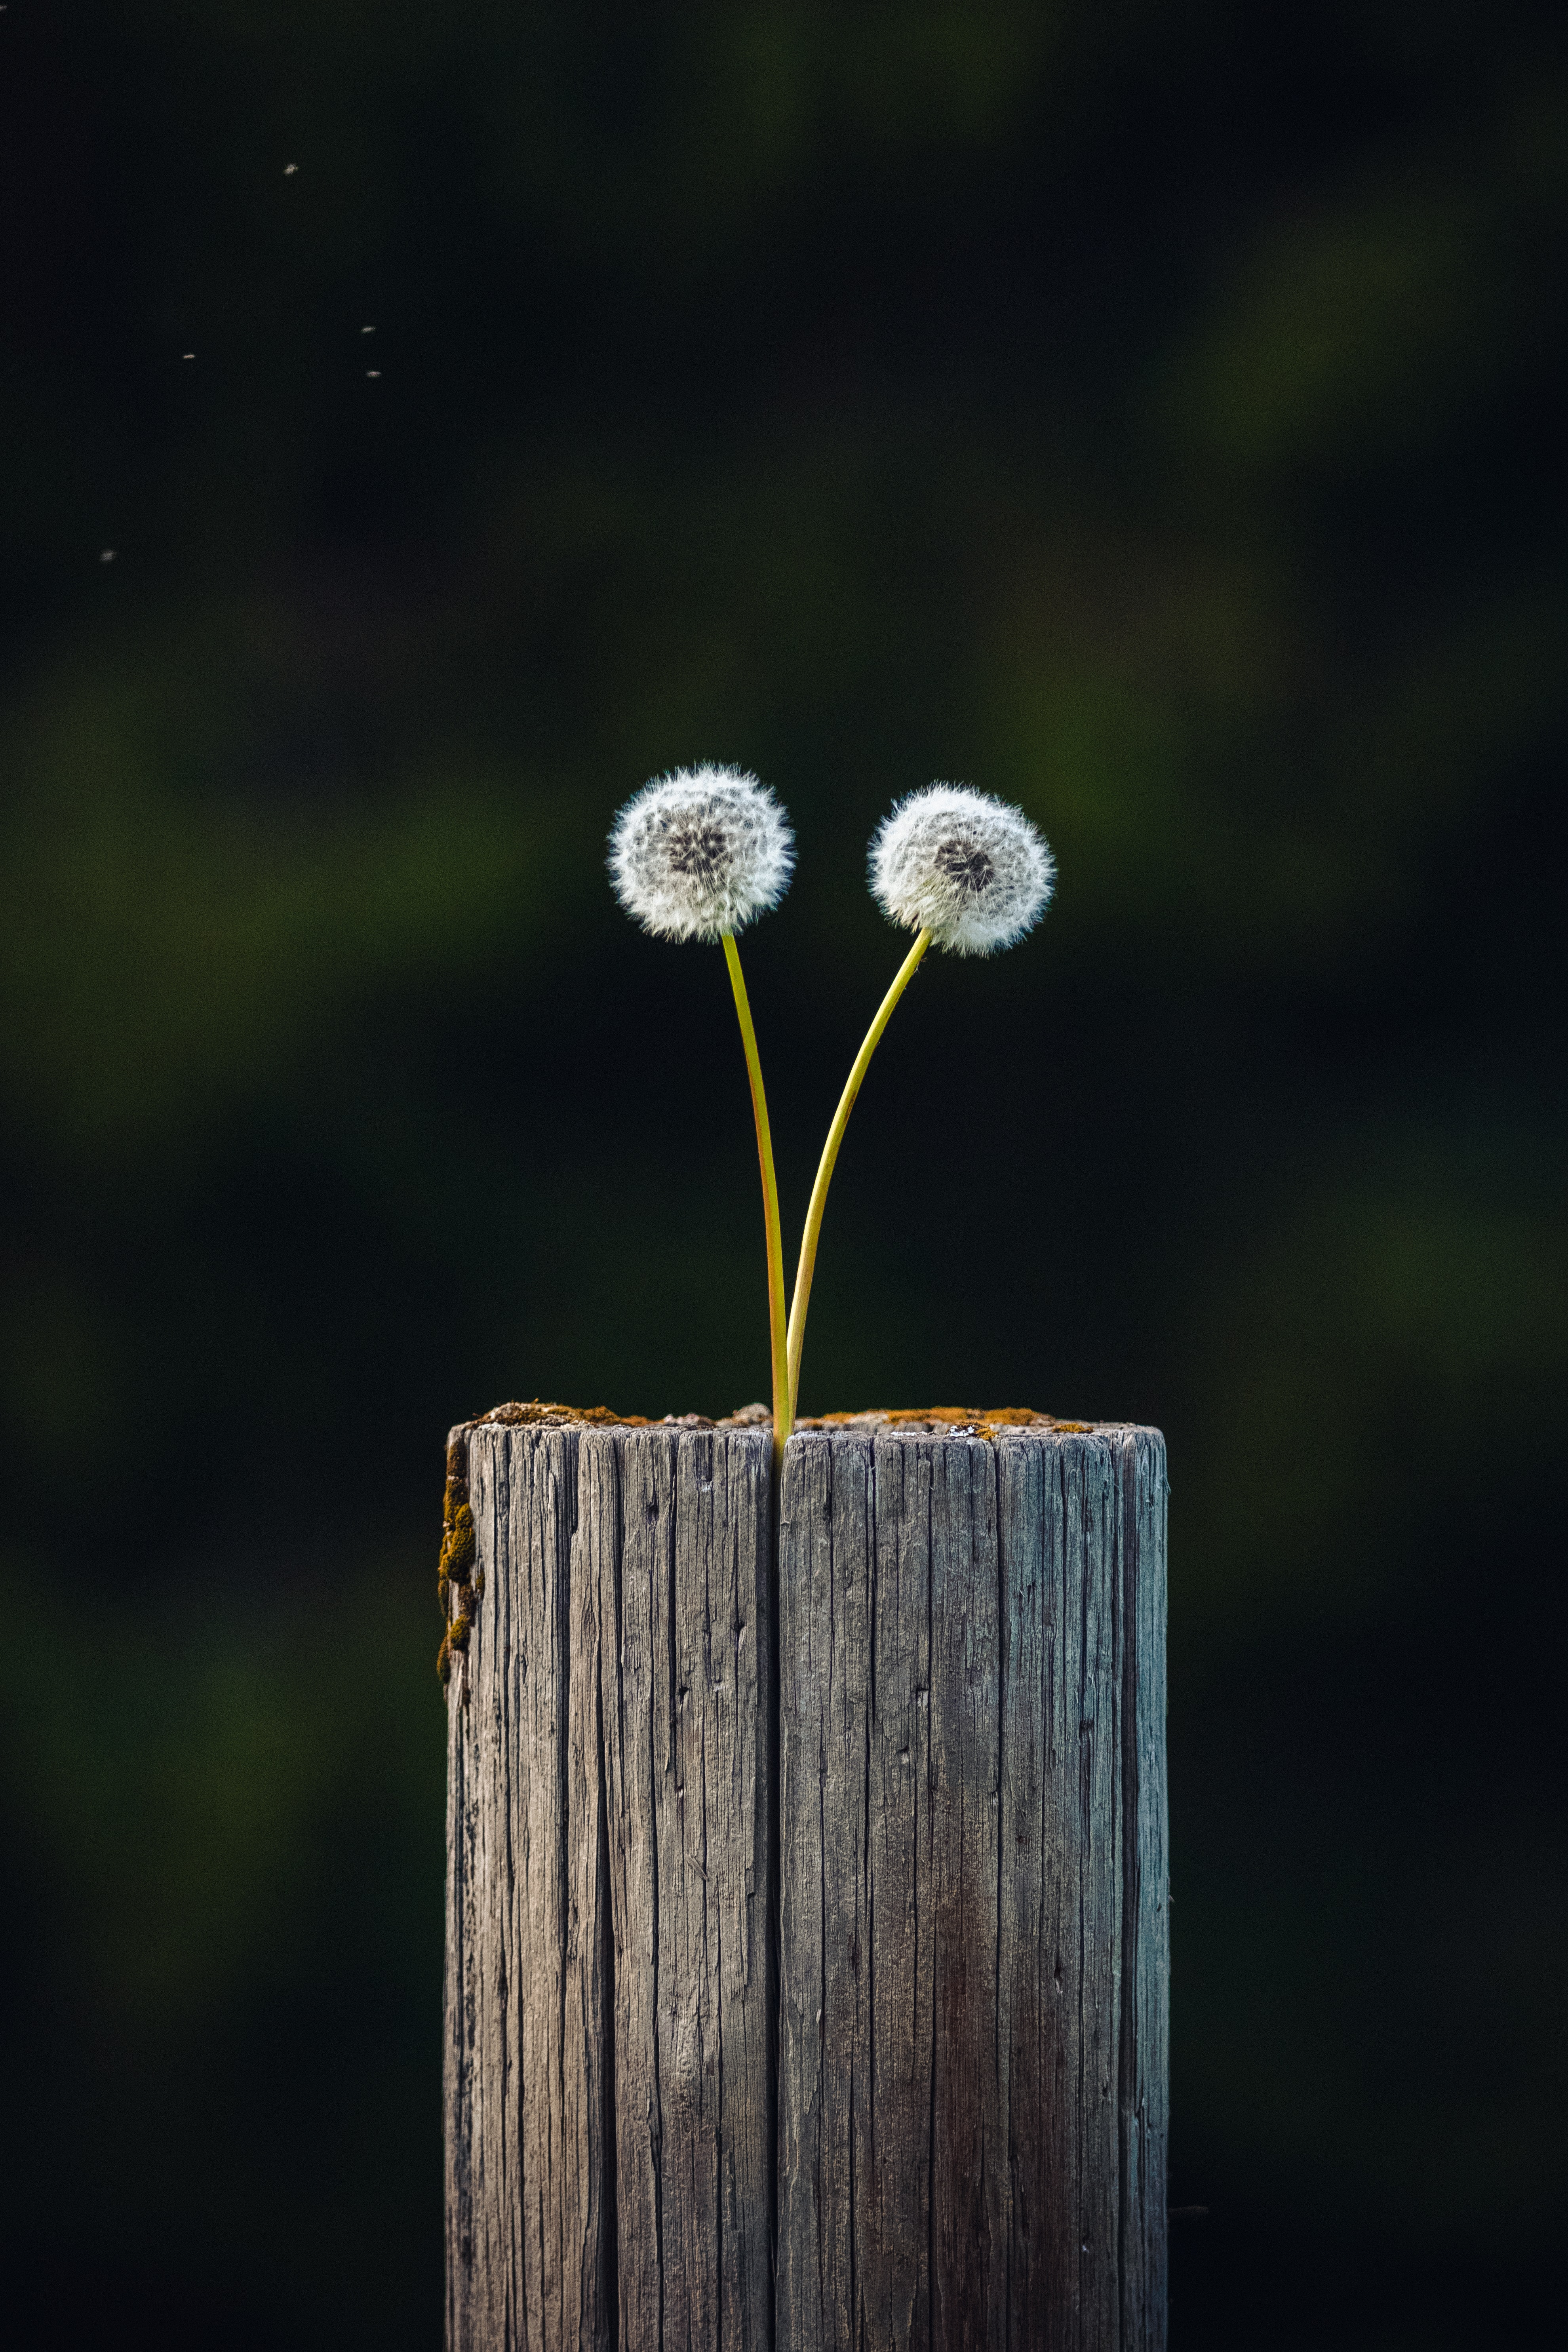 133449 download wallpaper Nature, Dandelions, Plant, Wood, Wooden, Focus, Log screensavers and pictures for free